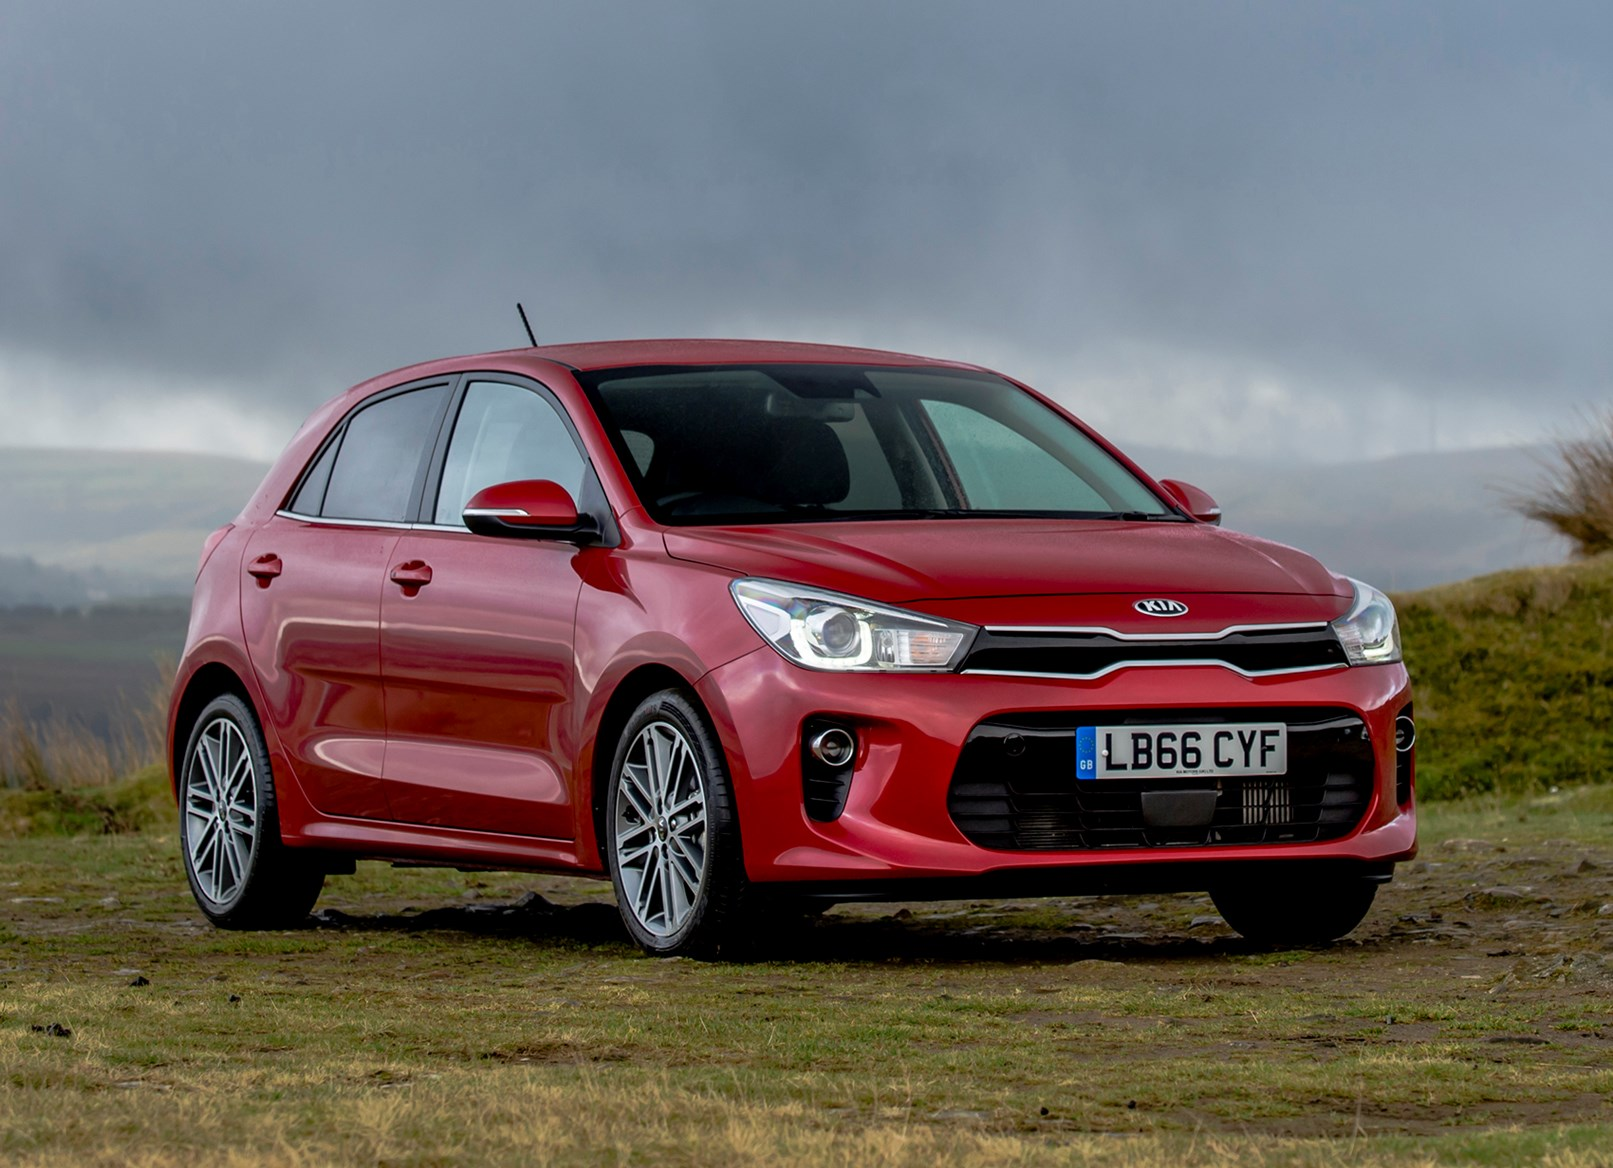 Kia Rio Hatchback 2017 Photos Parkers HD Wallpapers Download free images and photos [musssic.tk]